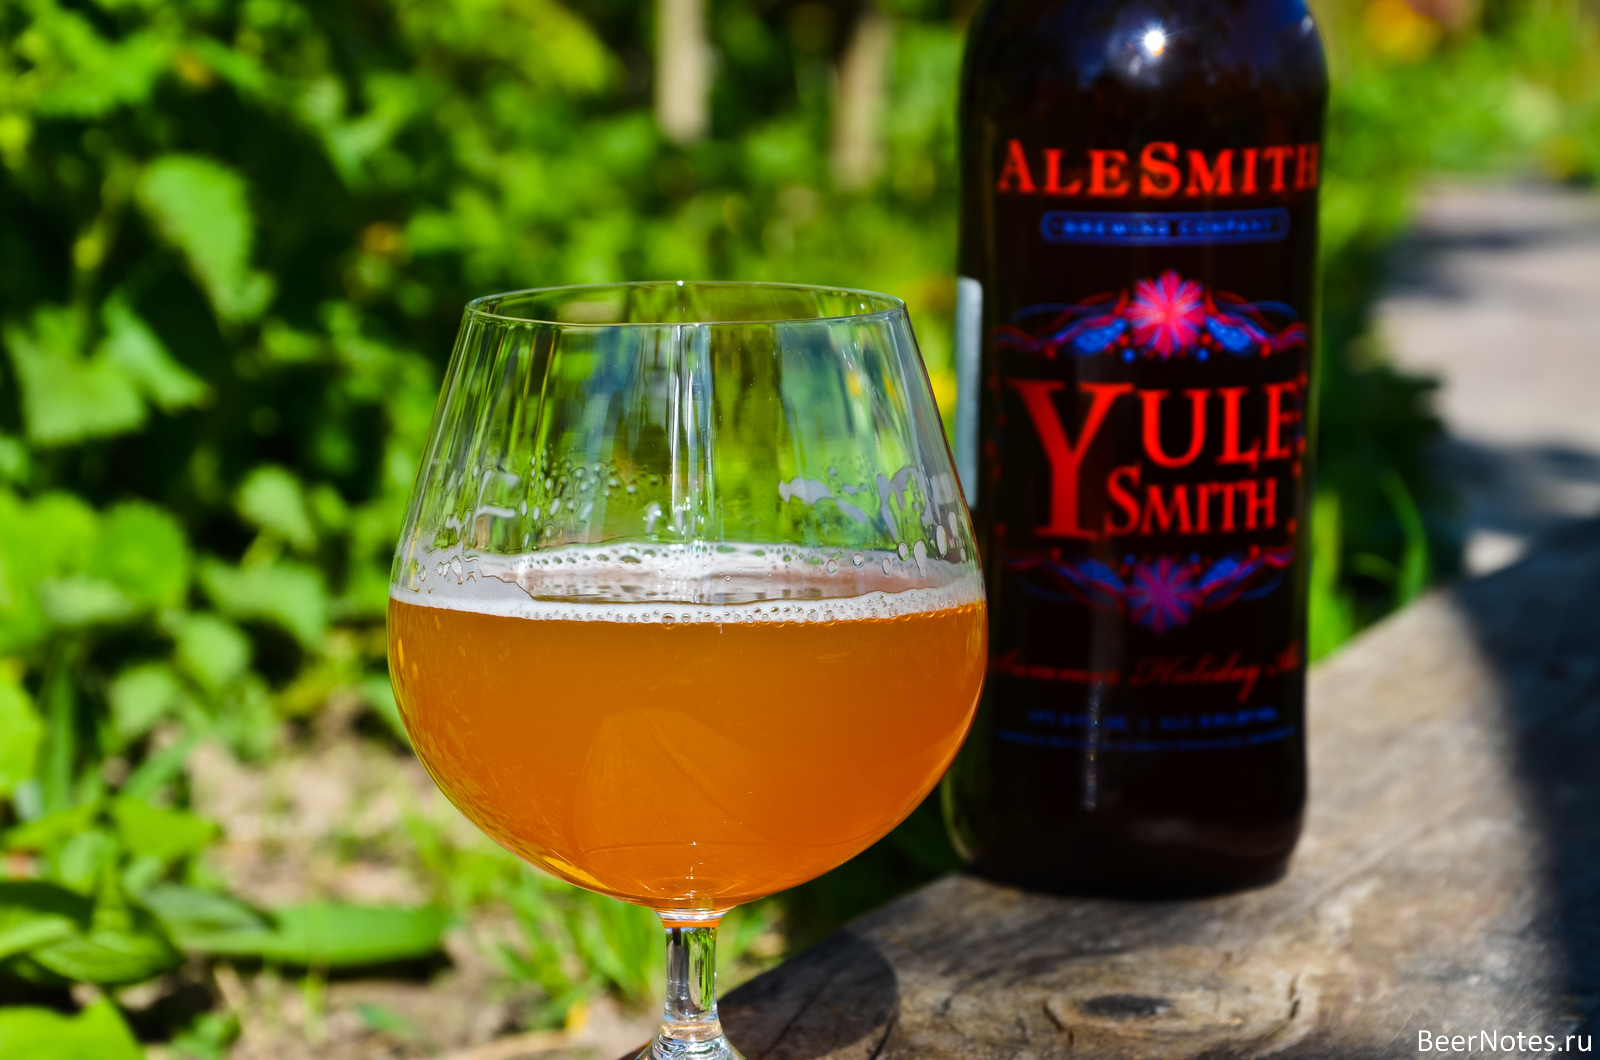 AleSmith YuleSmith (Summer) India Pale Ale5